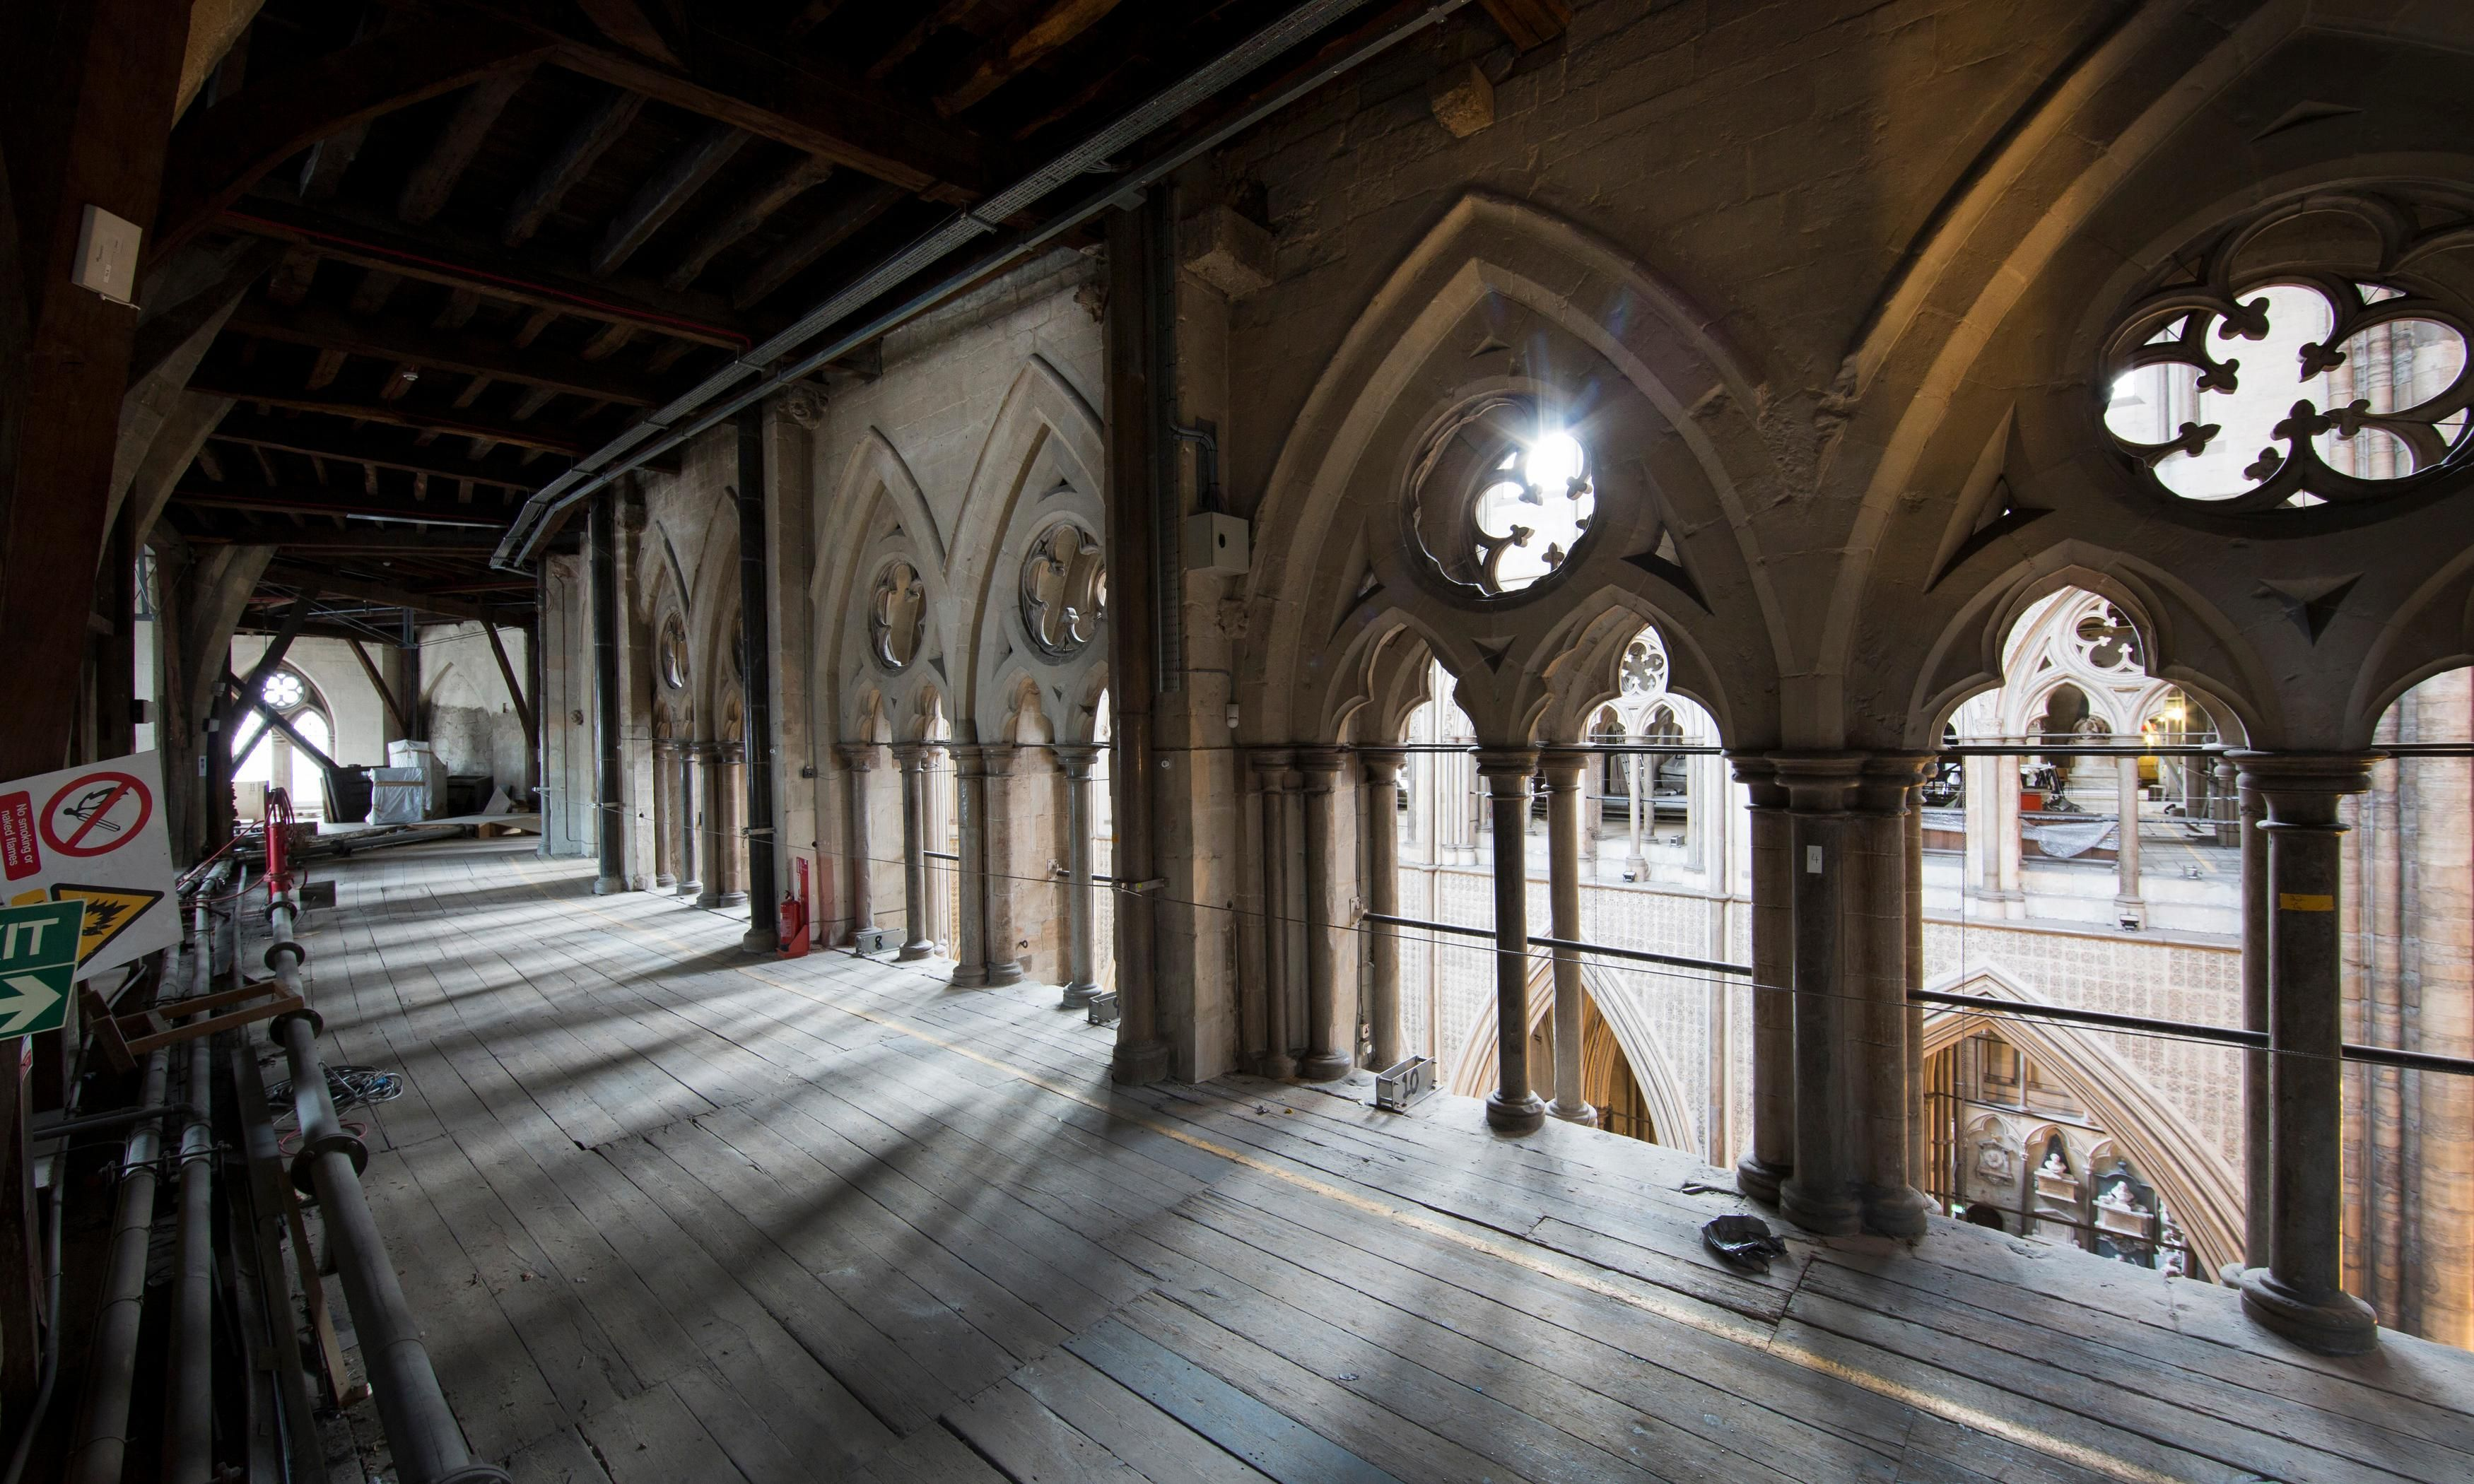 Westminster Abbey S Attics Yield A Treasure Trove Of Stained Glass Stained Glass Westminster Abbey Westminster